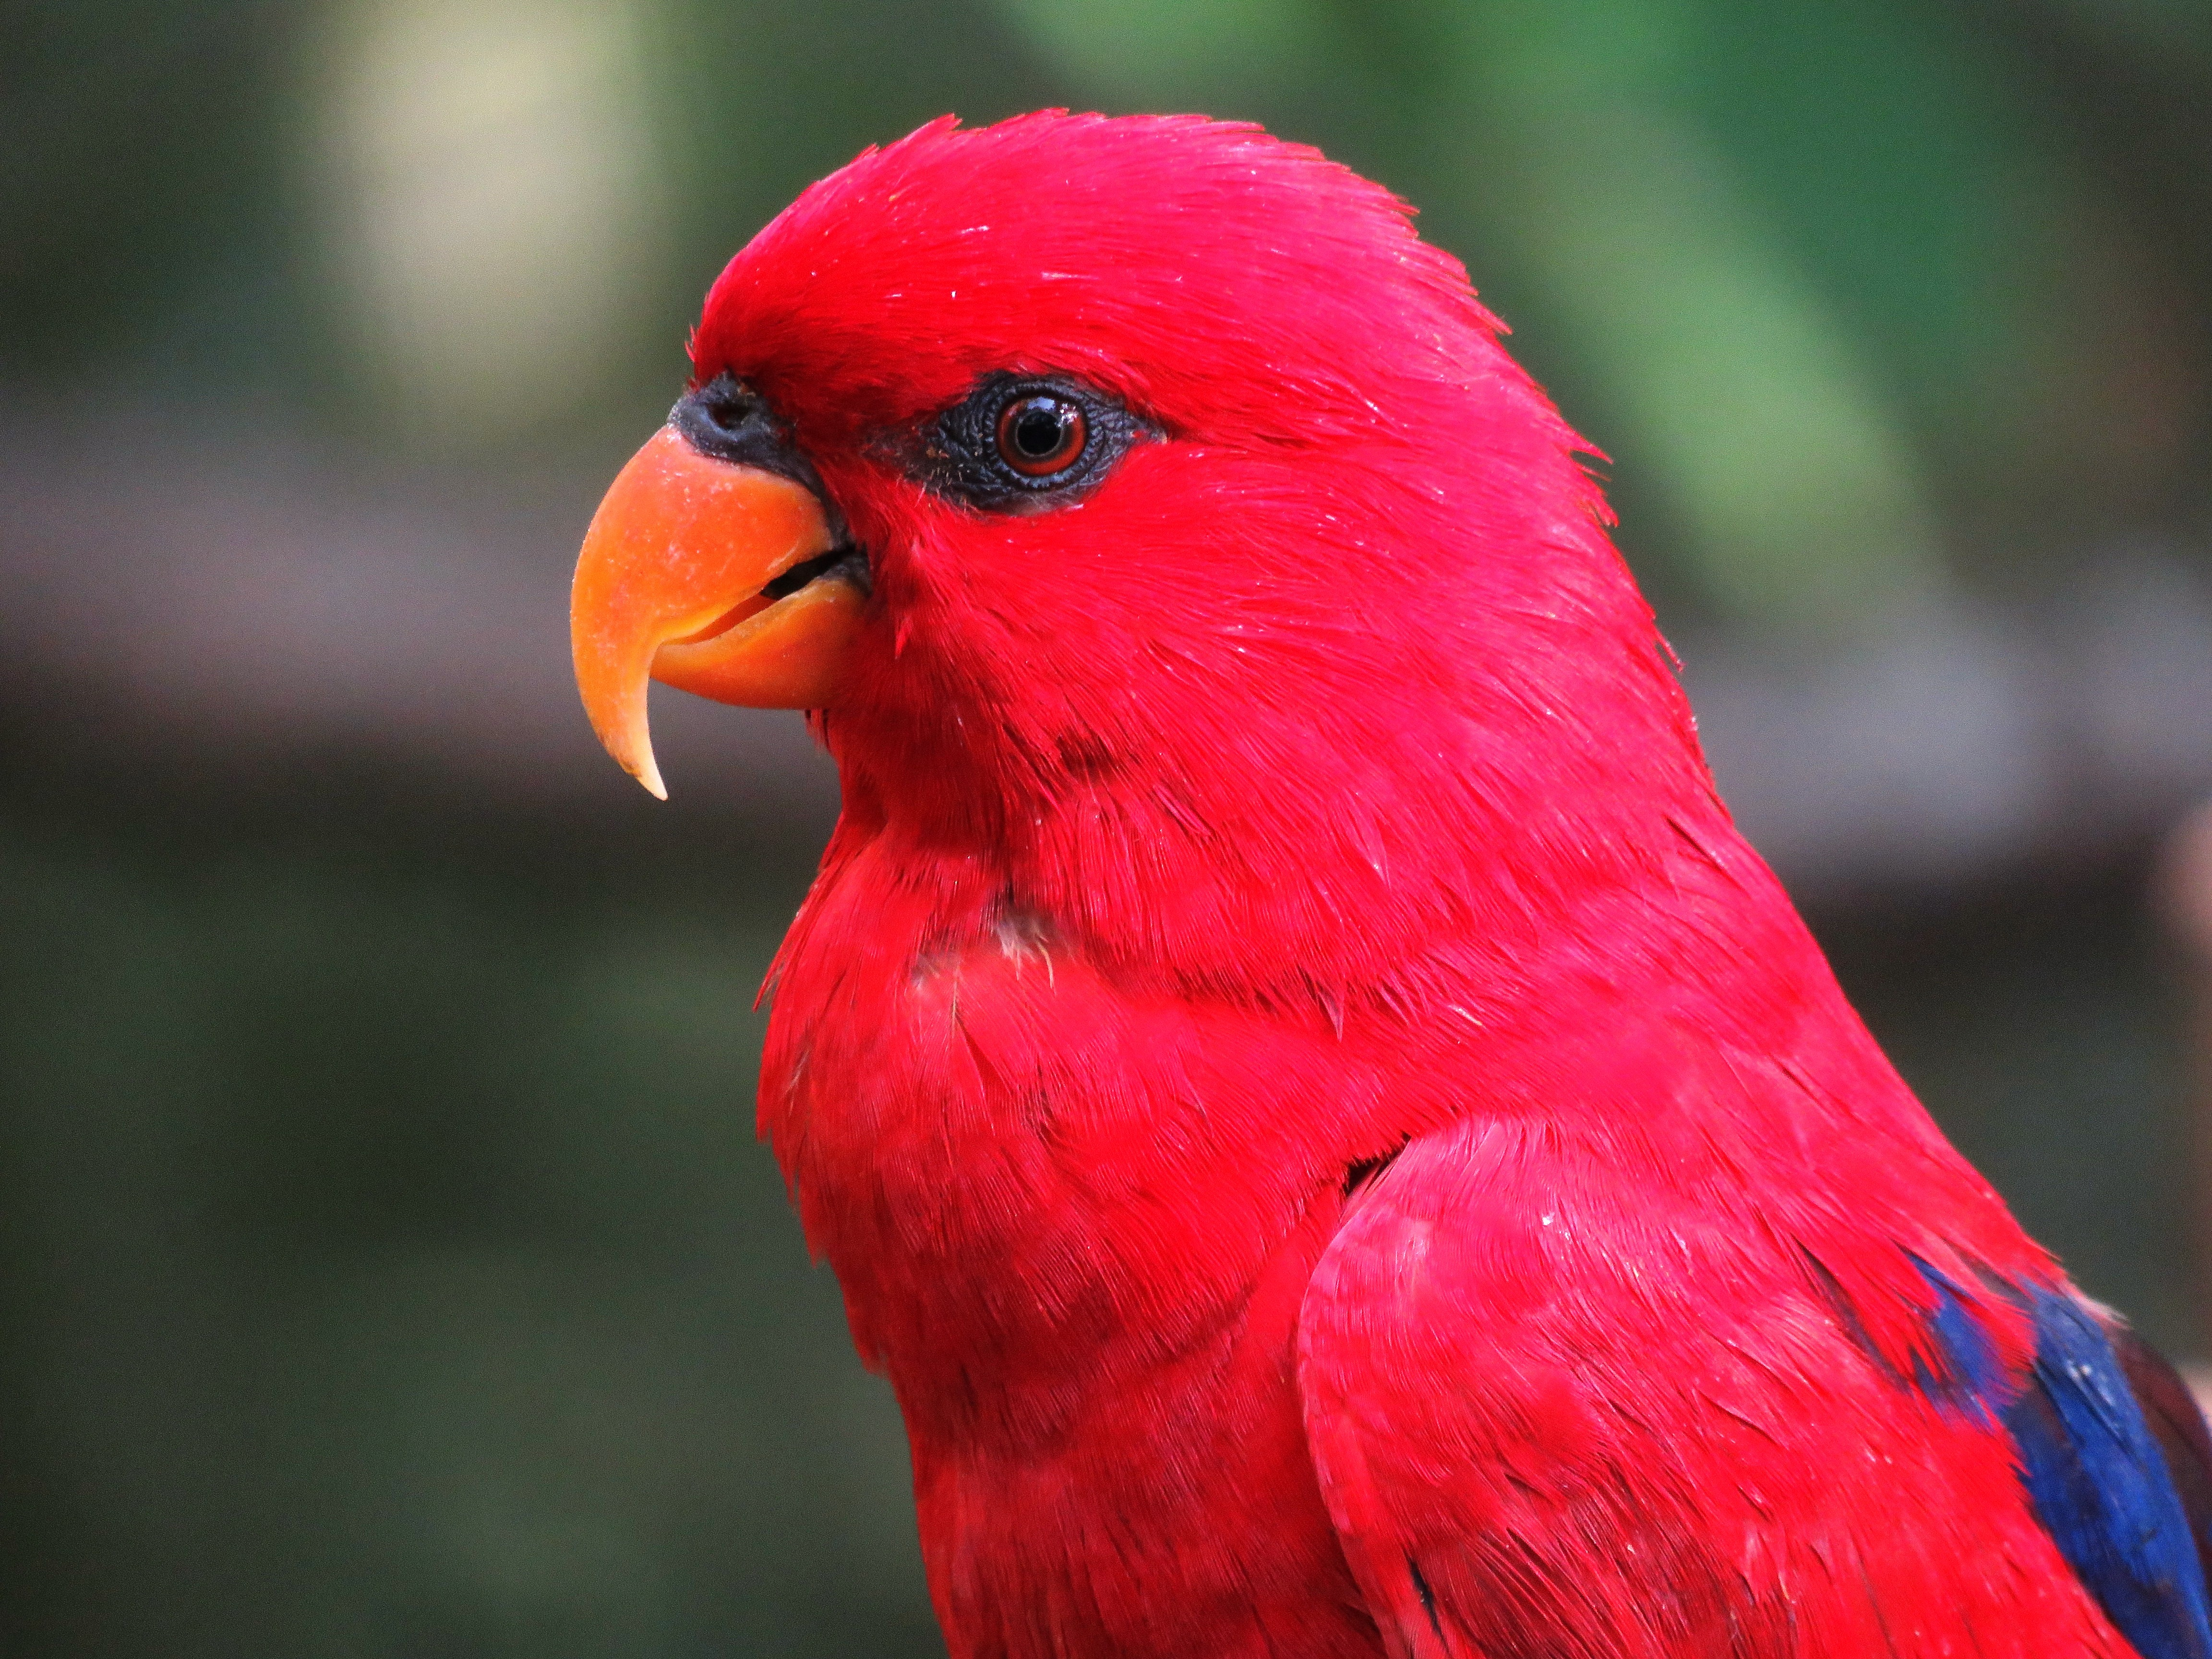 65206 download wallpaper Animals, Macaw, Parrots, Bright screensavers and pictures for free